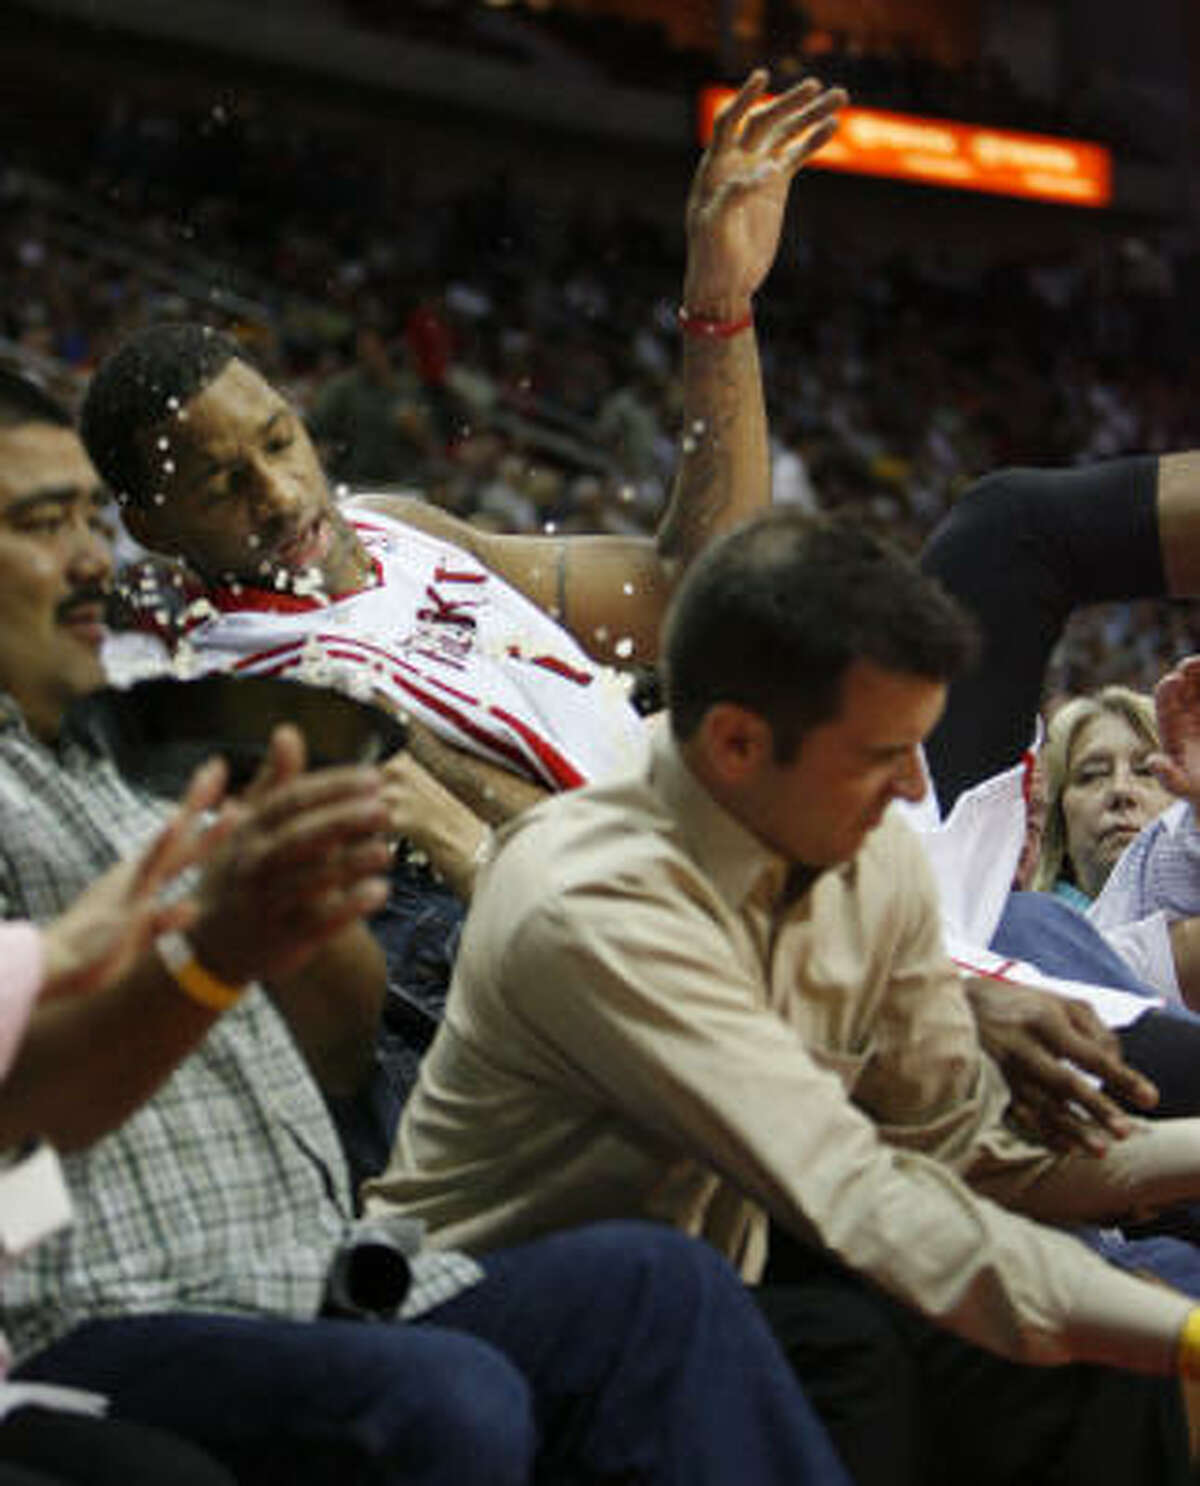 It was this kind of night for the Rockets. Tracy McGrady took a spill into the stands in the second quarter.